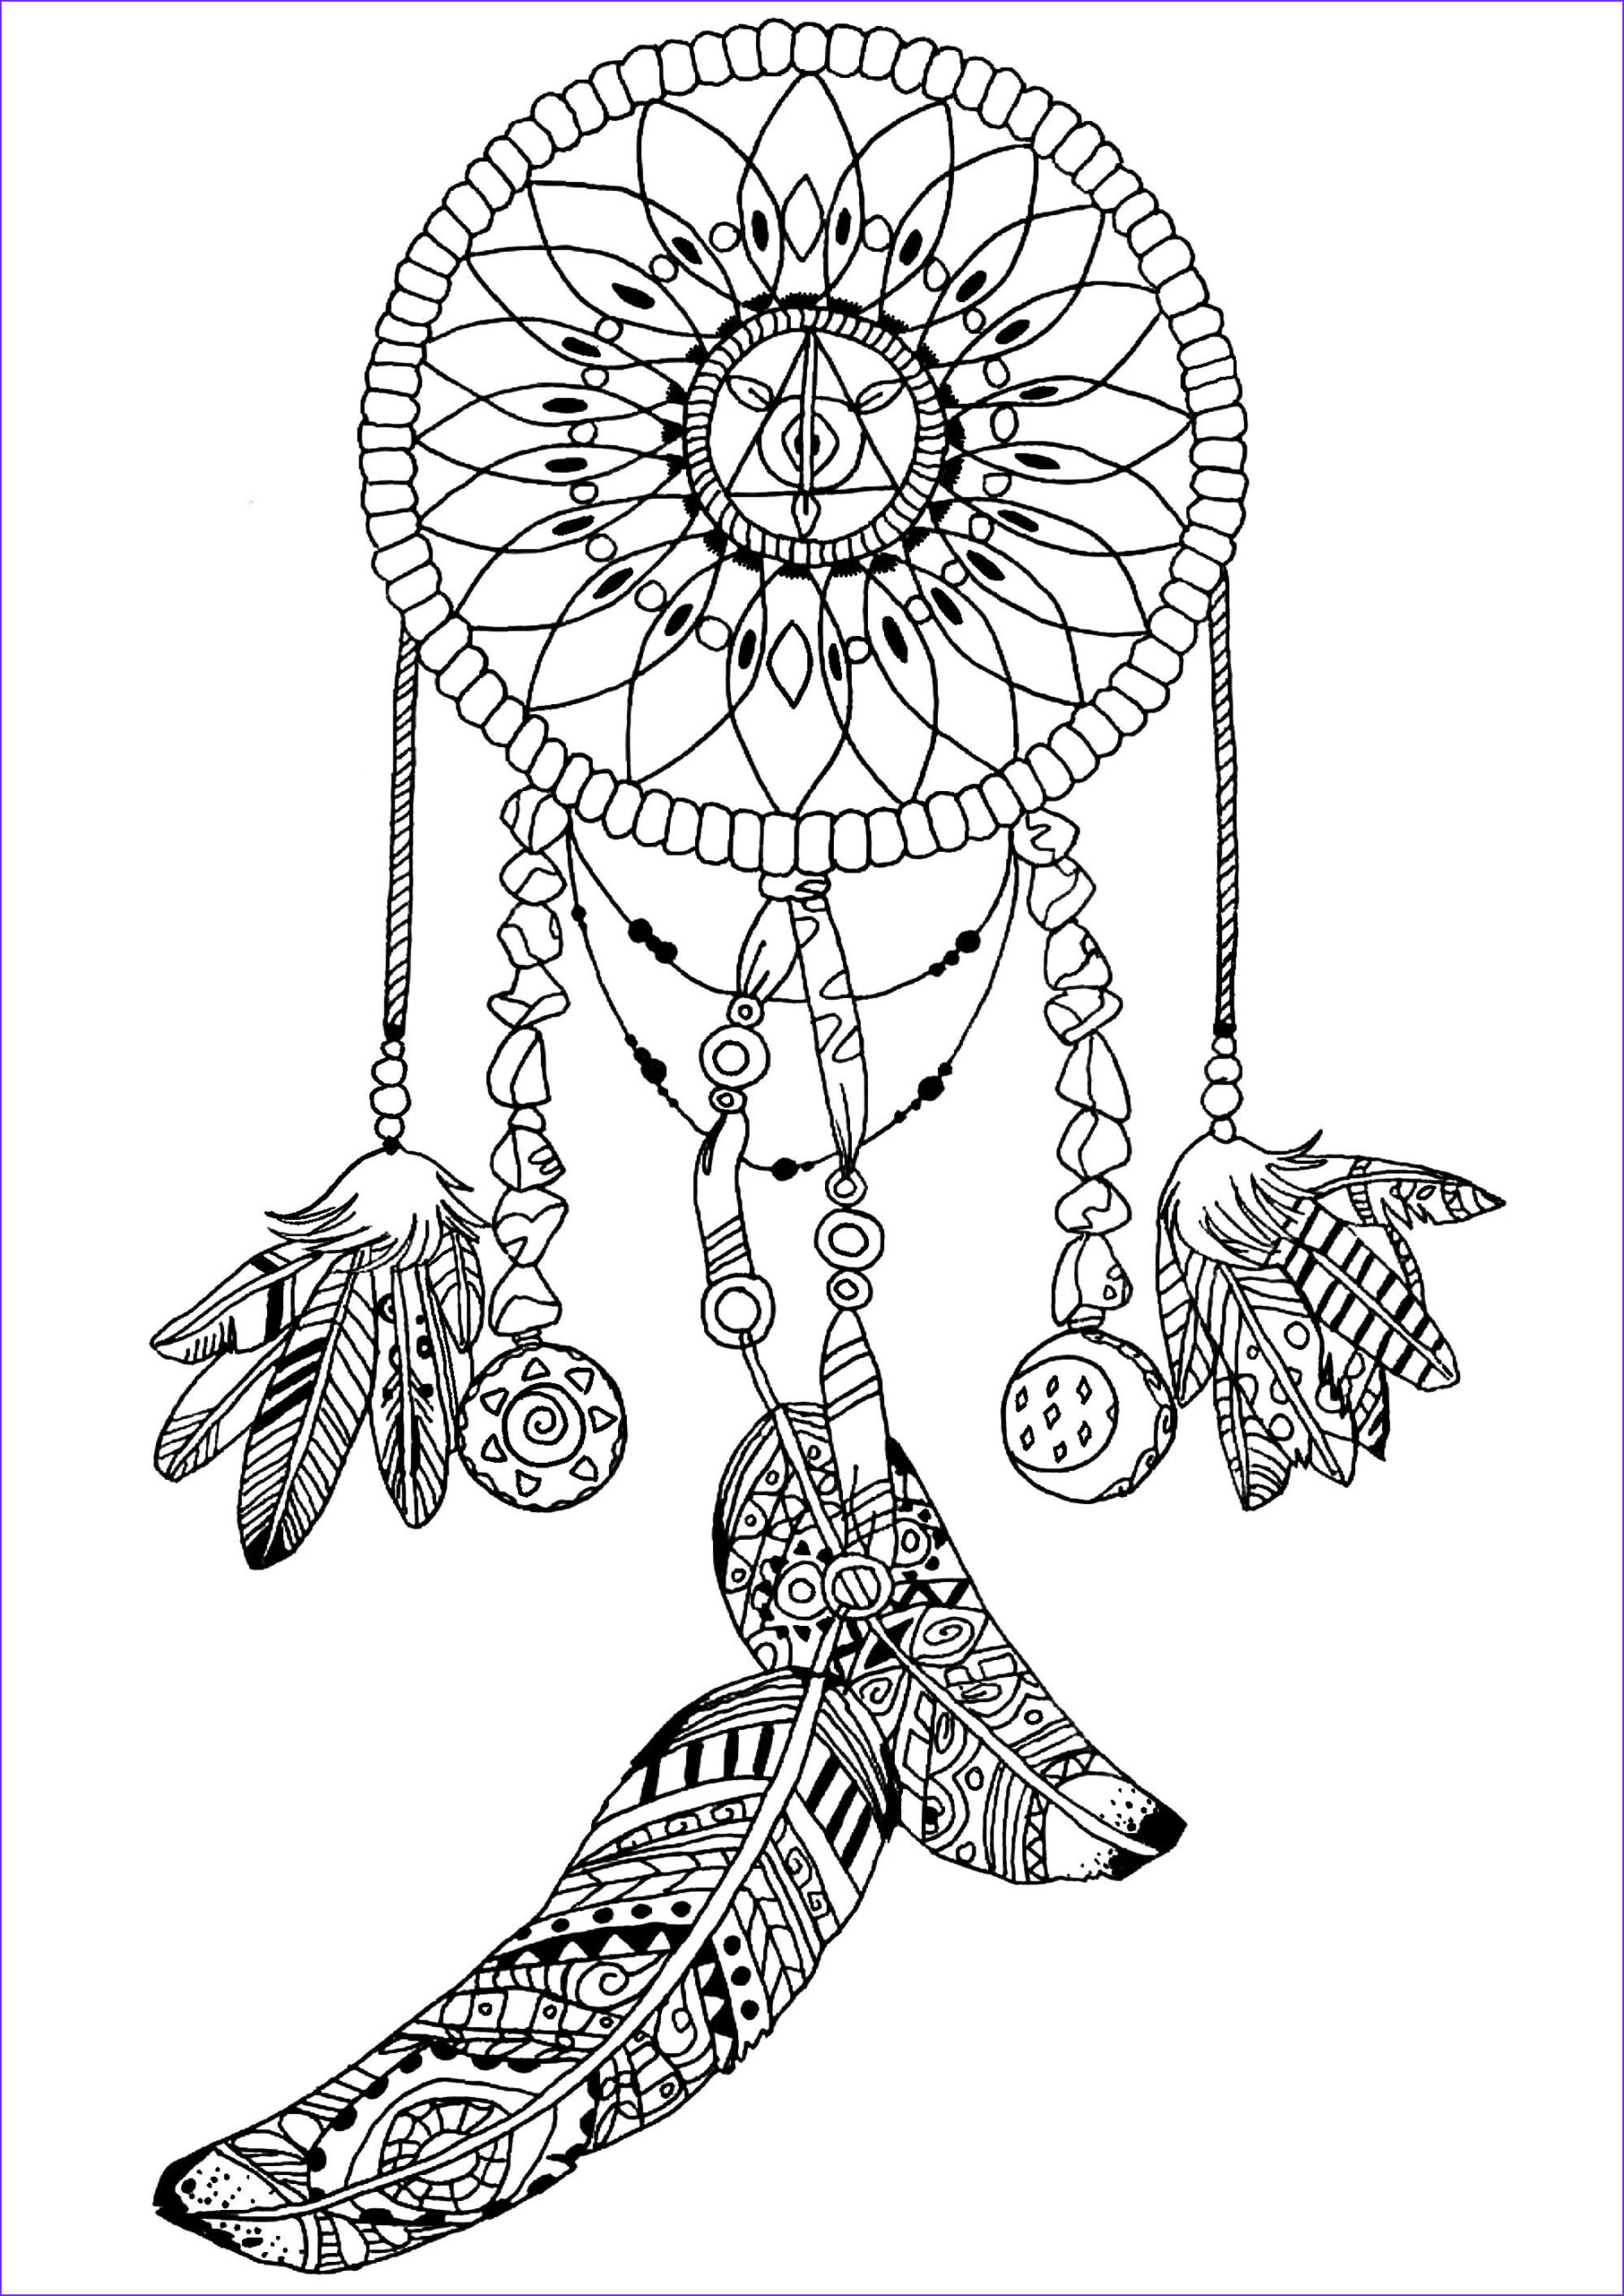 Coloring Pictures for Adults Cool Gallery Coloring Pages for Adults Our Adult Coloring Pages Galleries